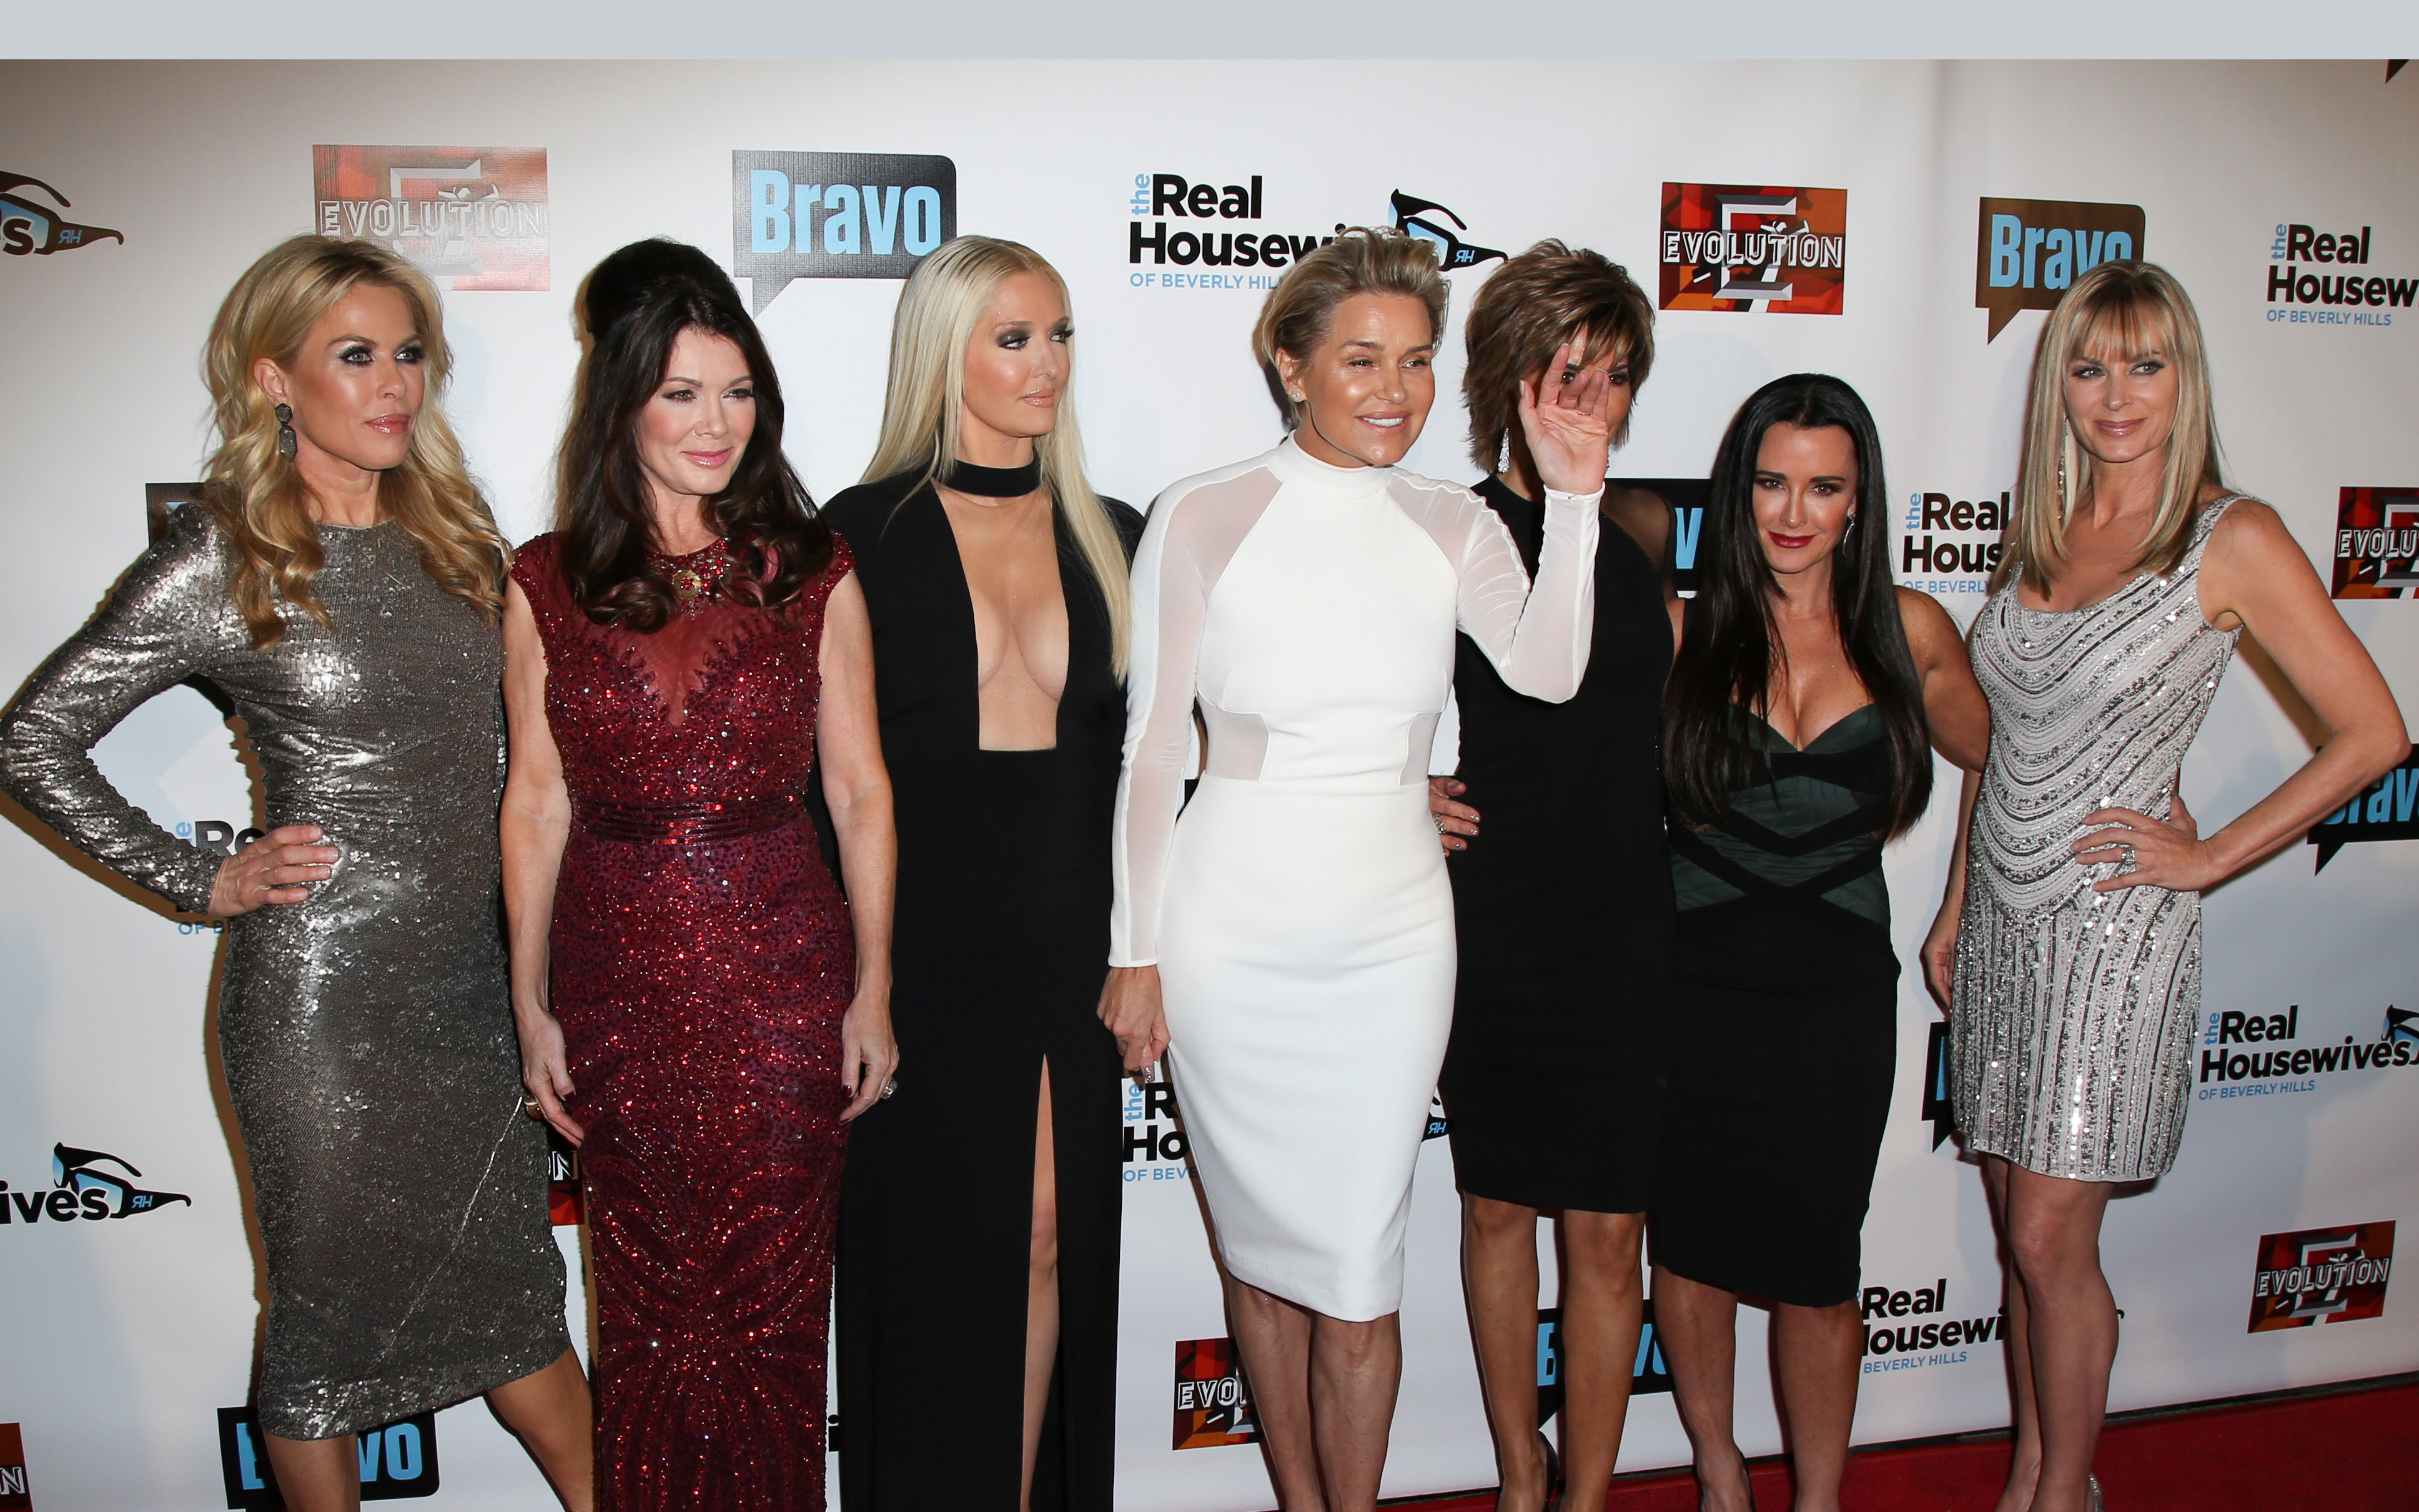 real housewives of beverly hills rhobh reunion taping kim richards yolanda foster